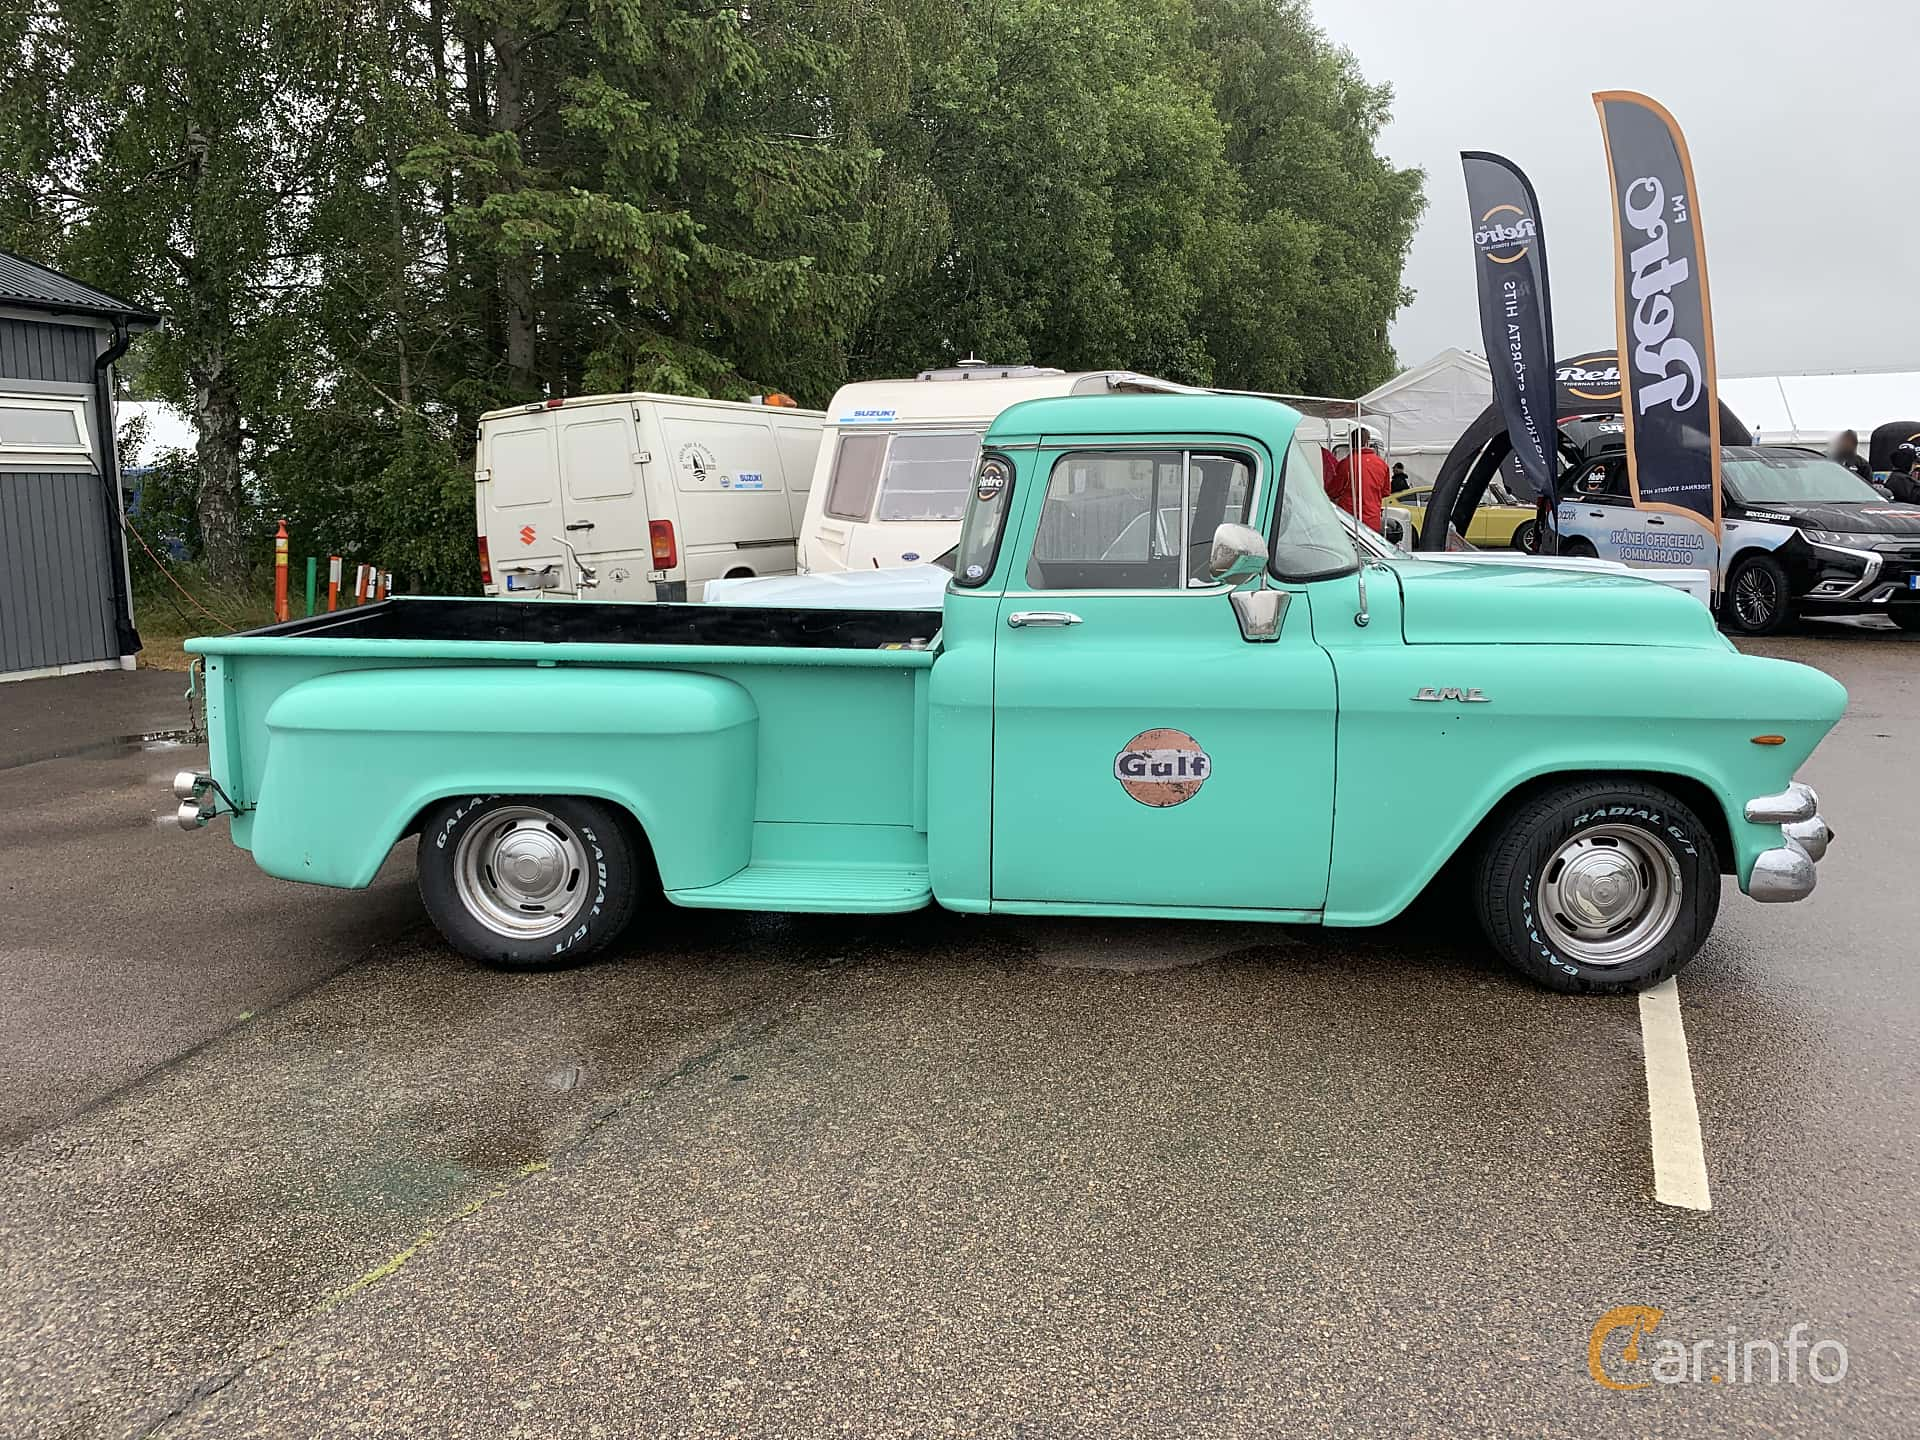 GMC Blue Chip 100 Pickup 5.2 V8 Automatic, 183hp, 1956 at Svenskt sportvagnsmeeting 2019